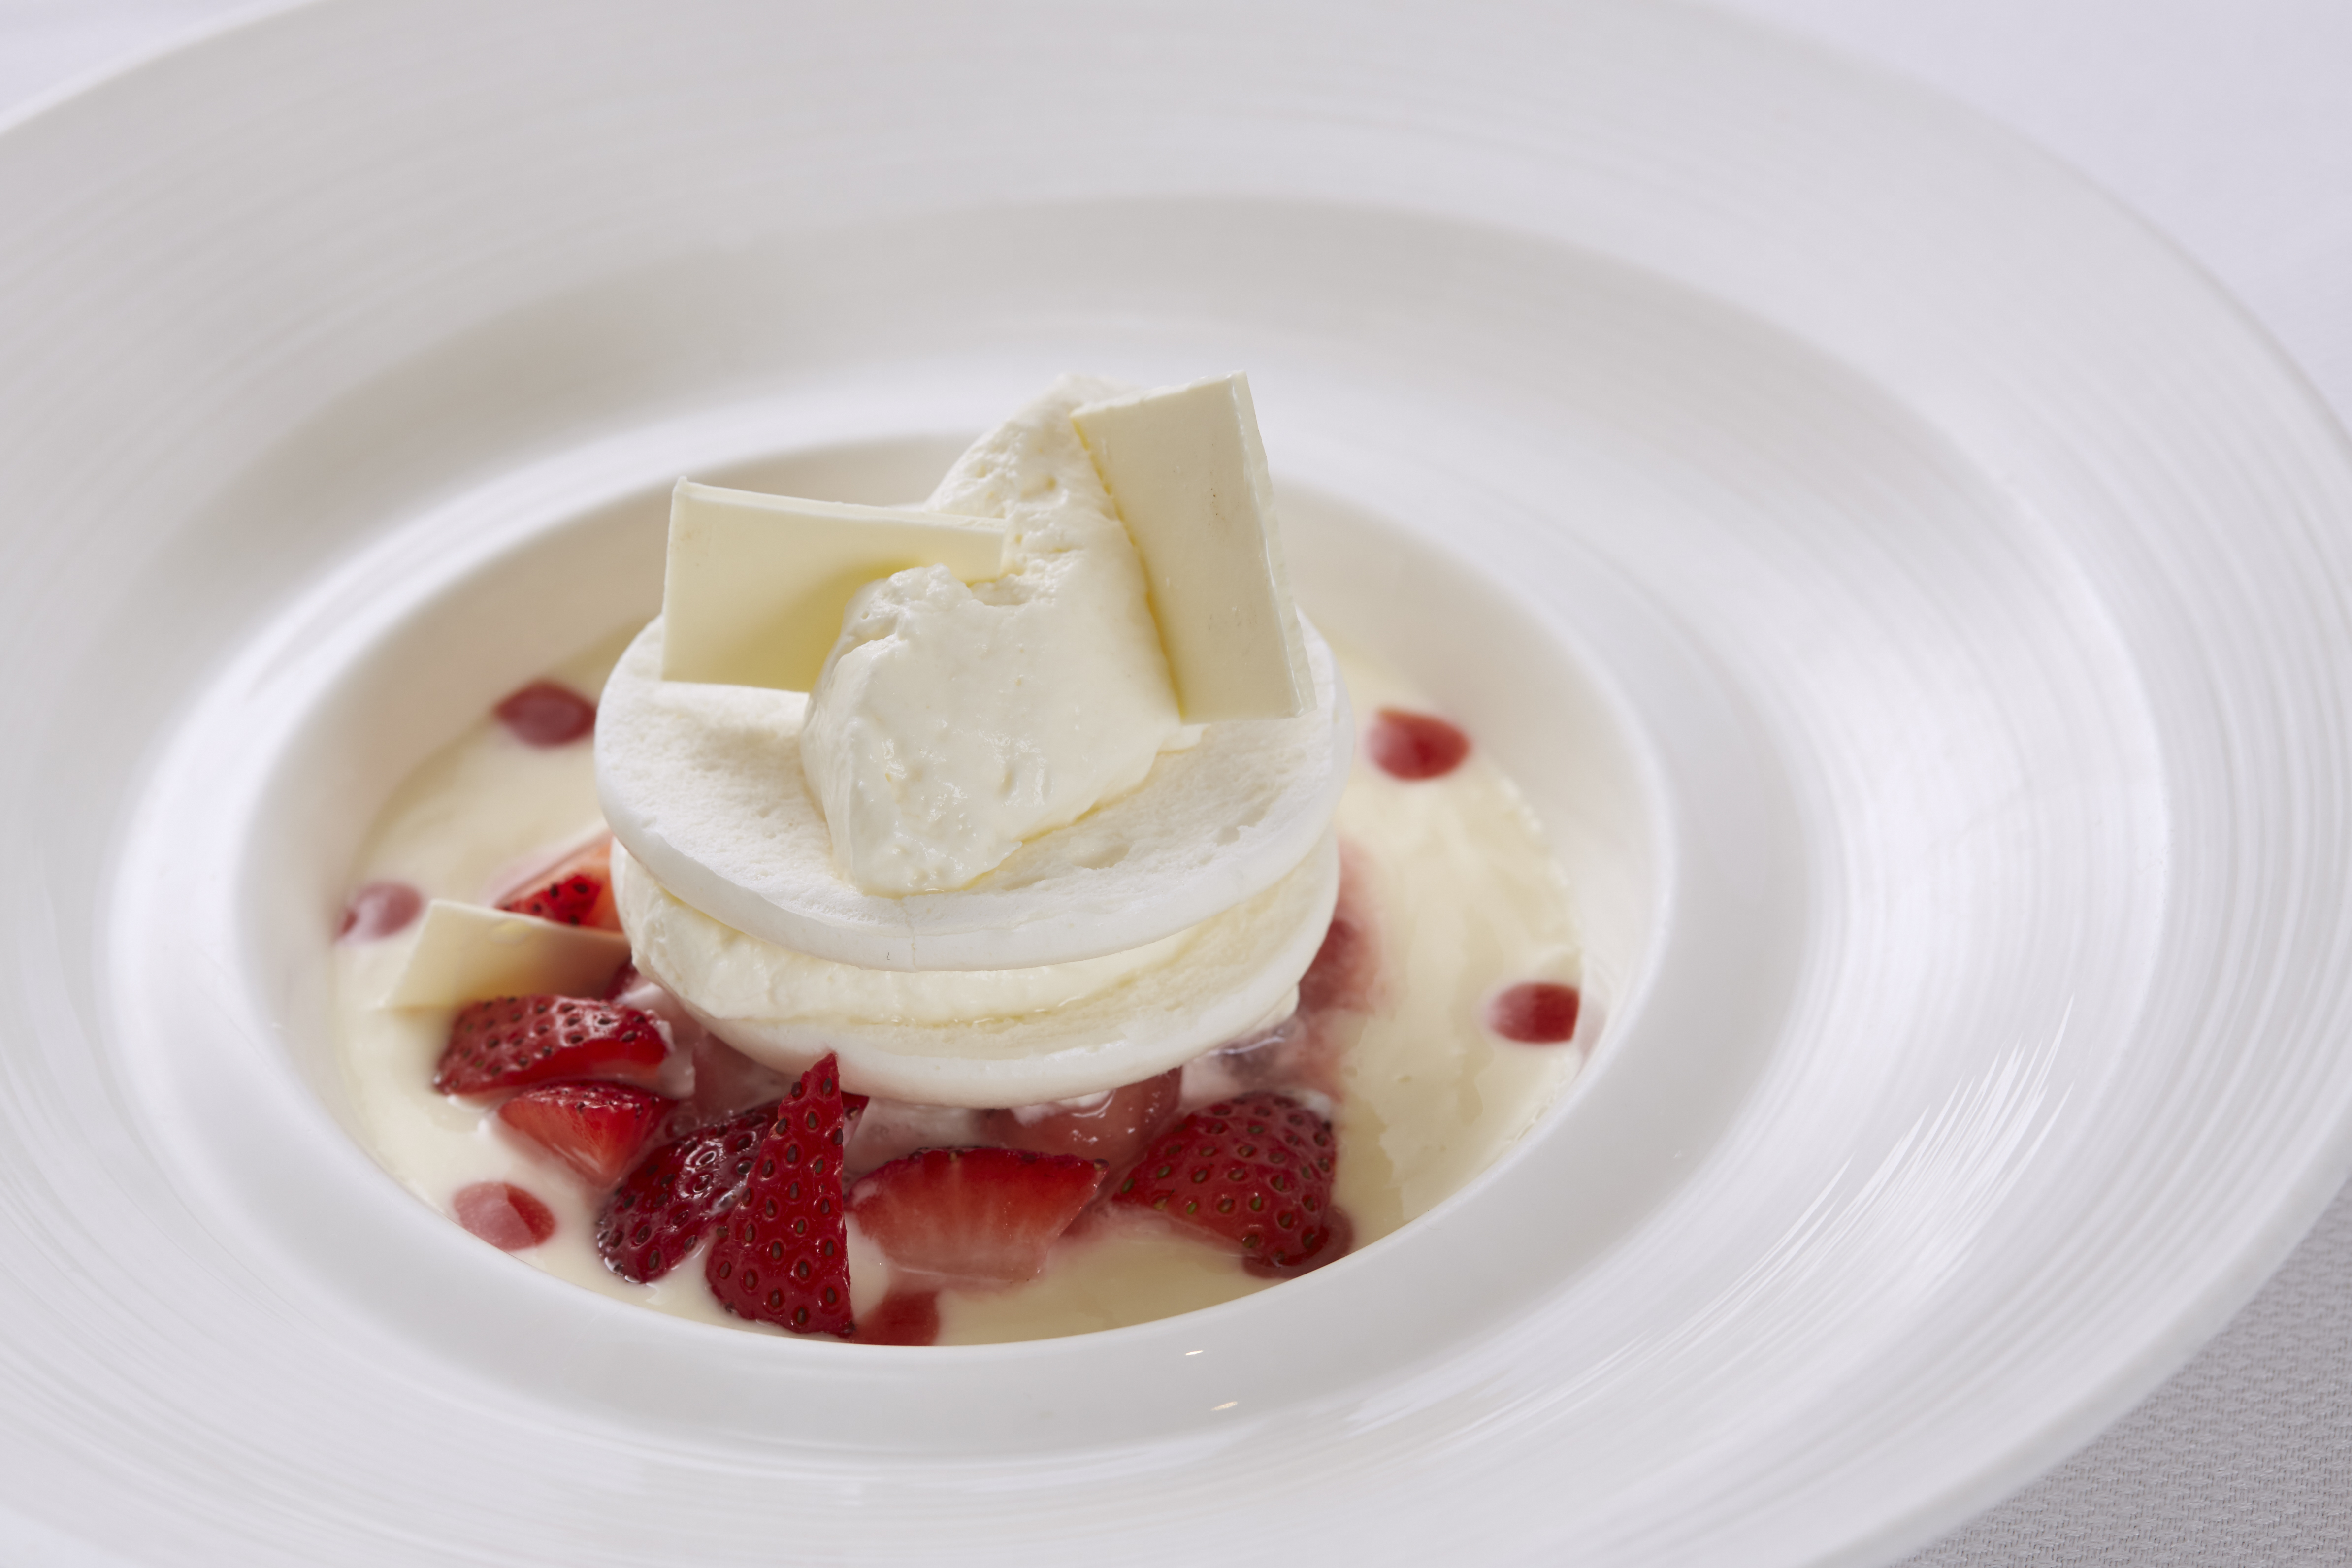 (Lighthouse-Strawberry Compote, Meringue, Vanilla Chantilly_13393-Food-Photography-Singapore_